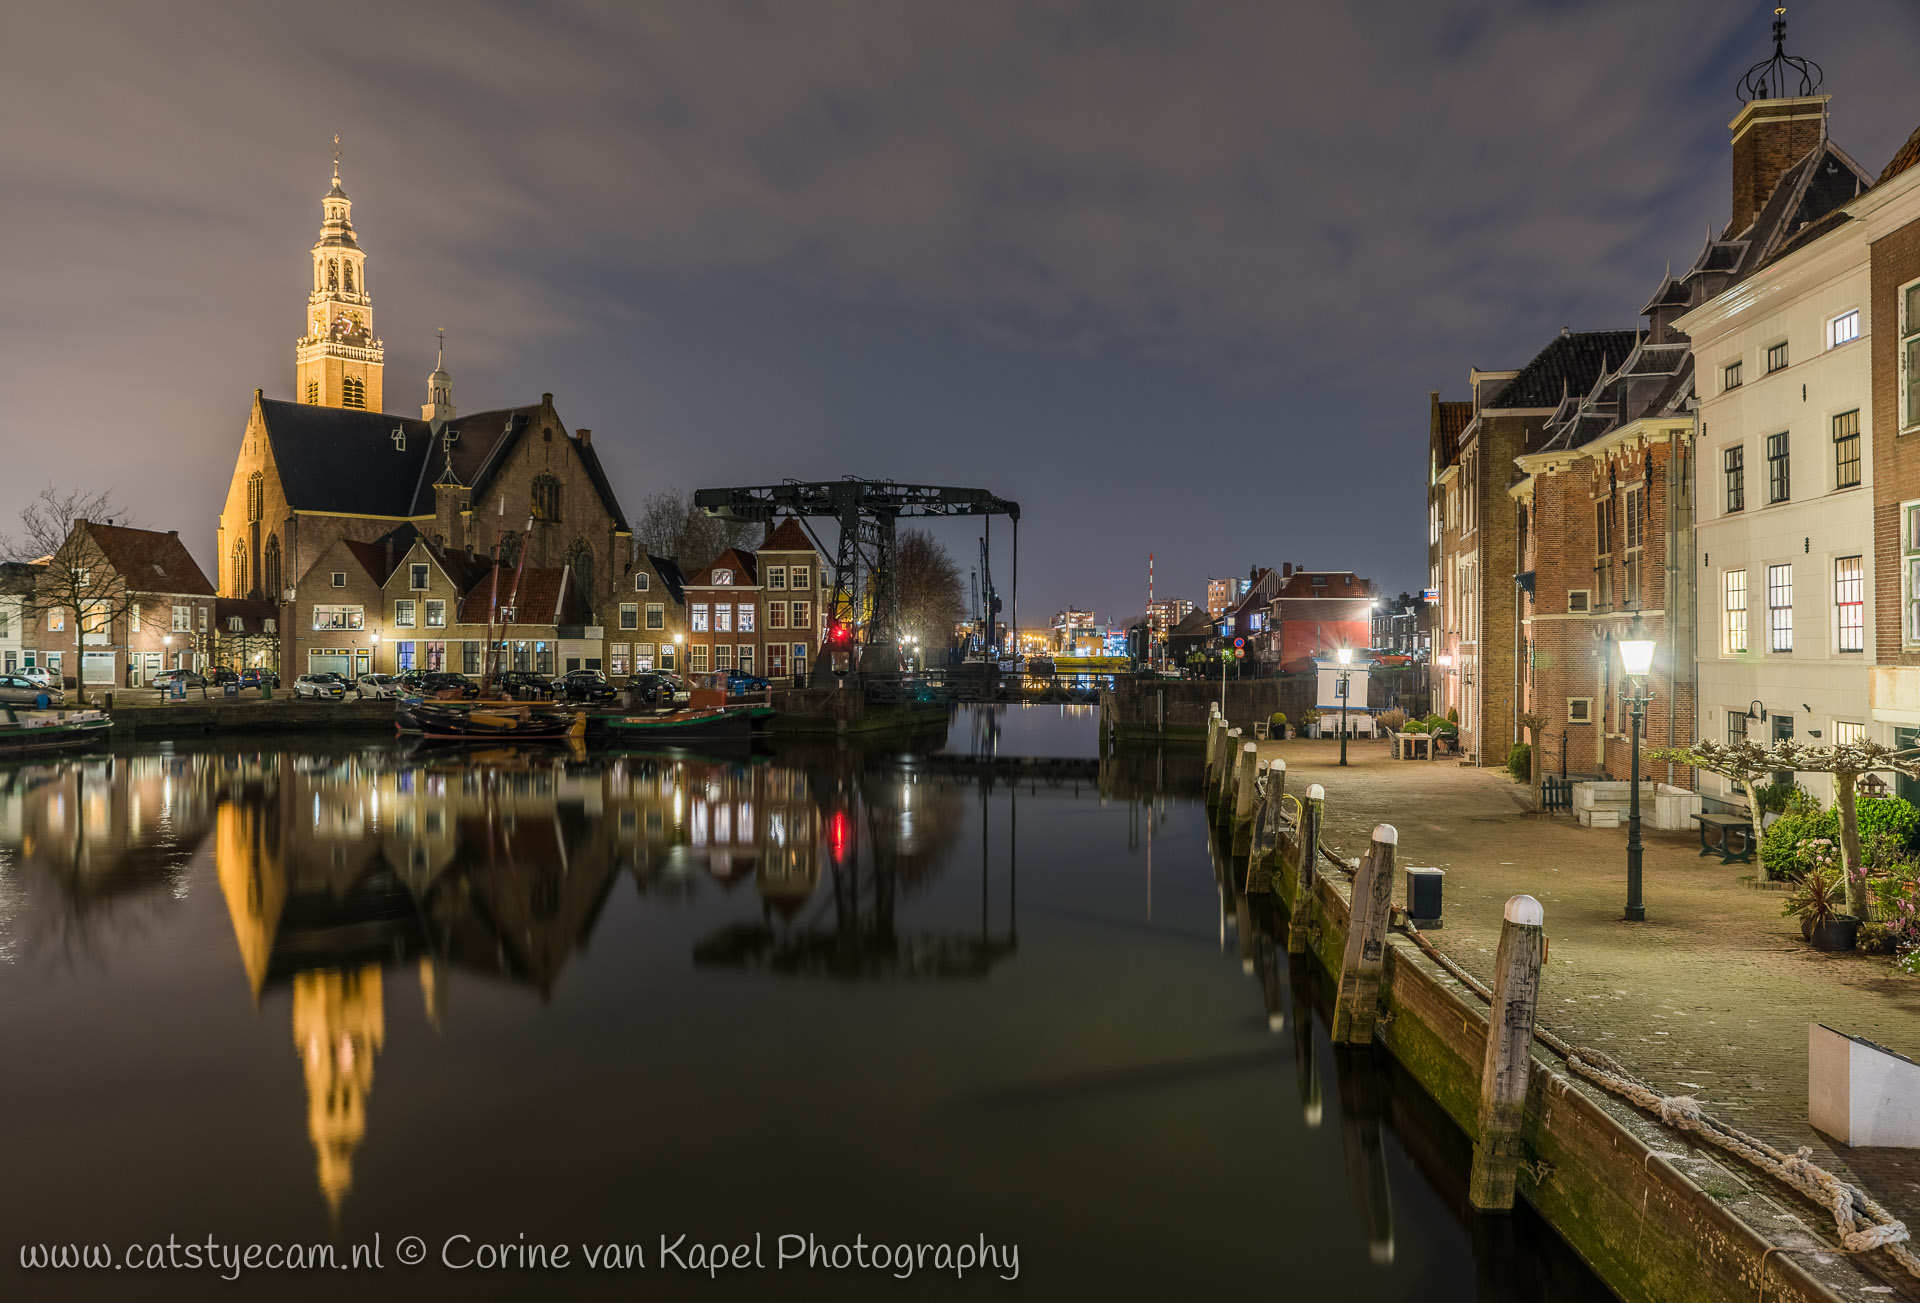 The harbor of Maassluis at night